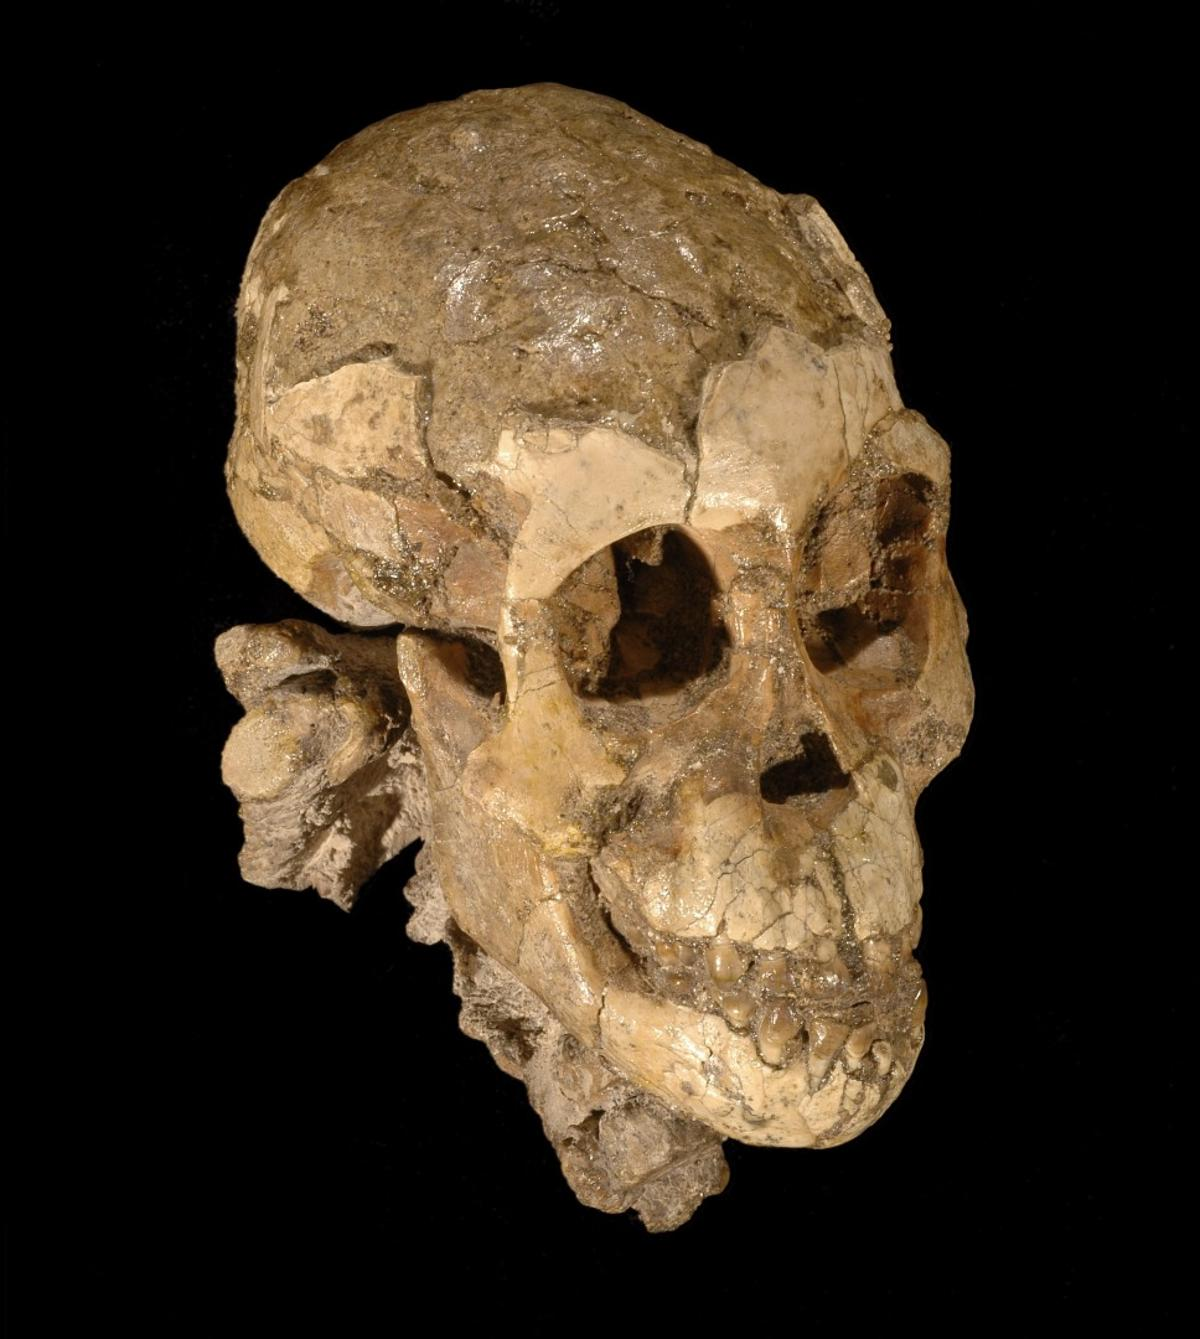 The skull of Selam, a 2 1/2-year-old toddler found in Dikika, Ethiopia